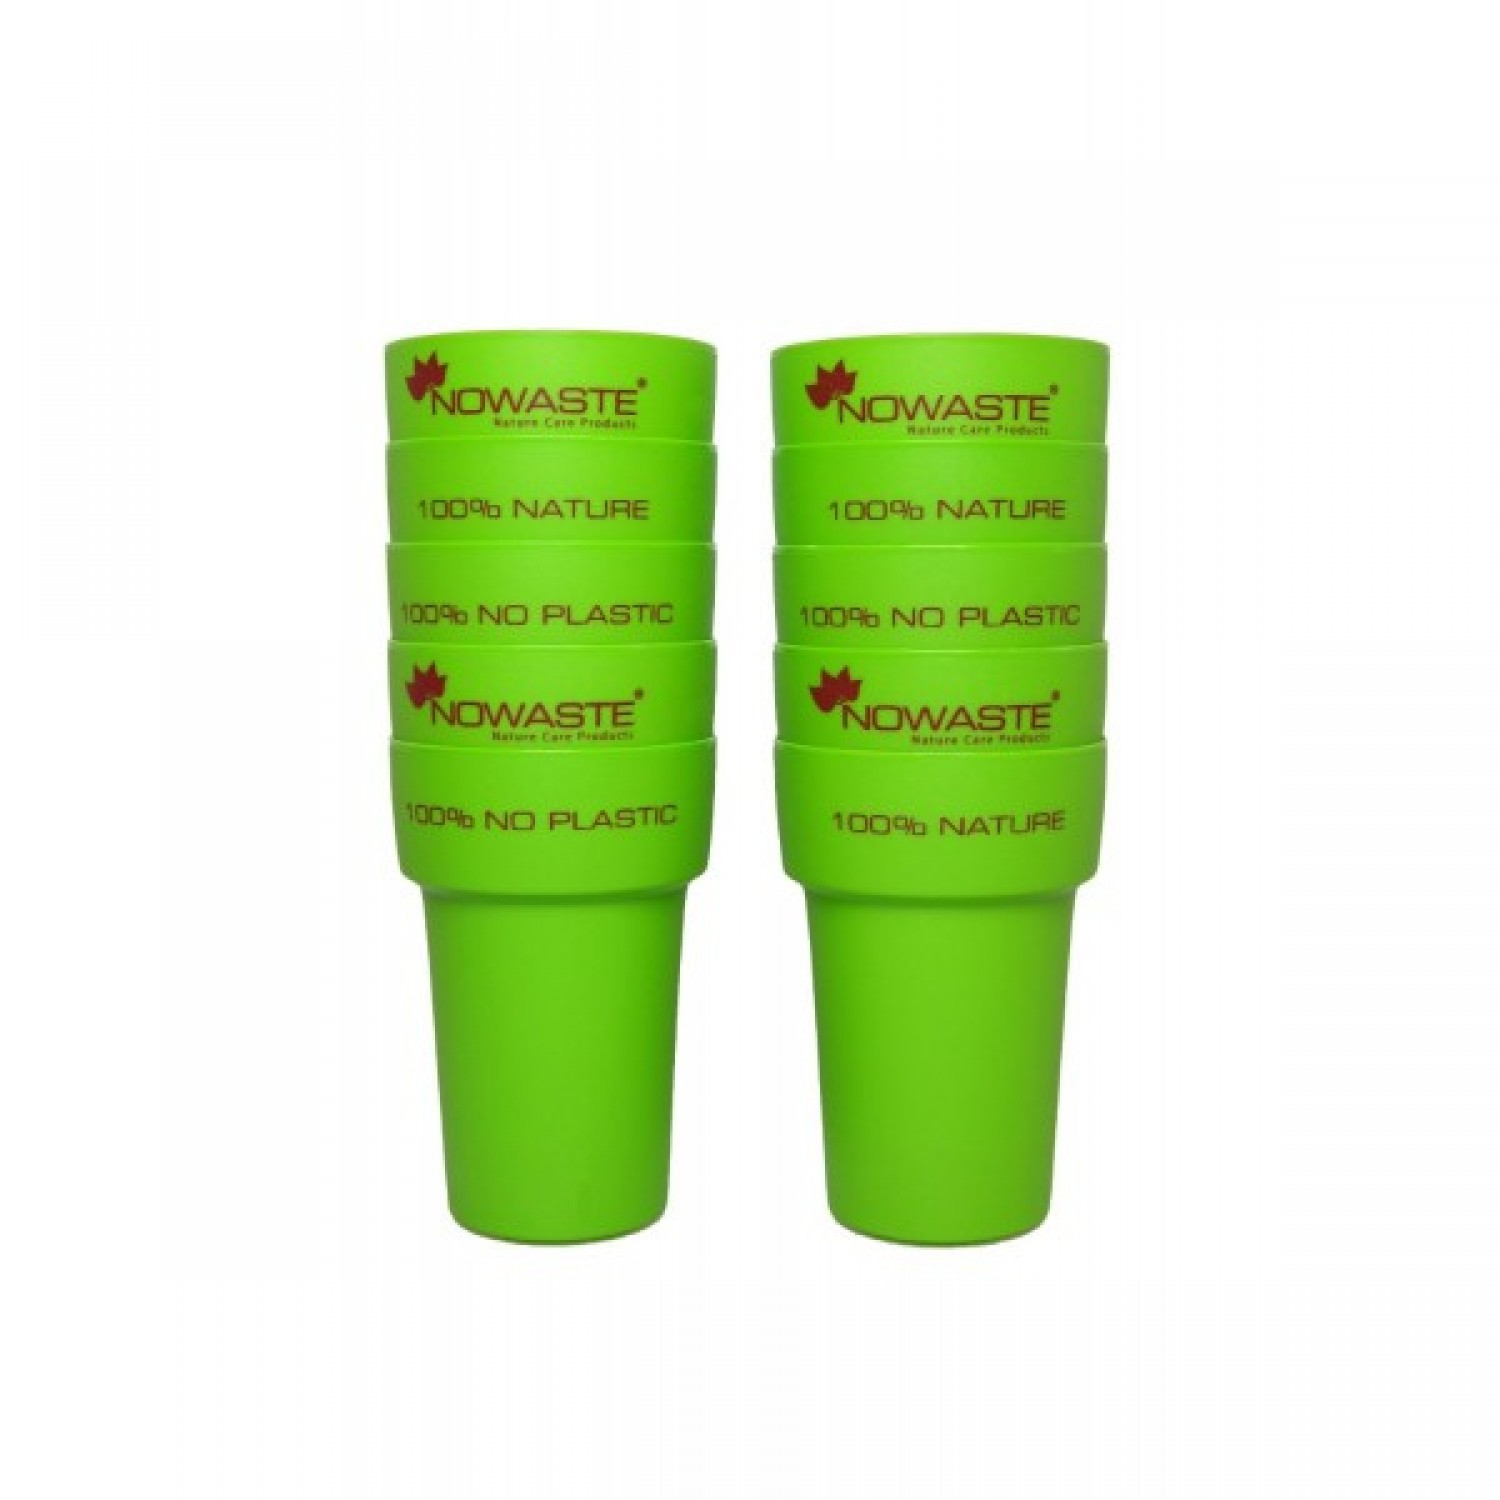 Green reusable Cup 300 ml pack of 10 | Nowaste